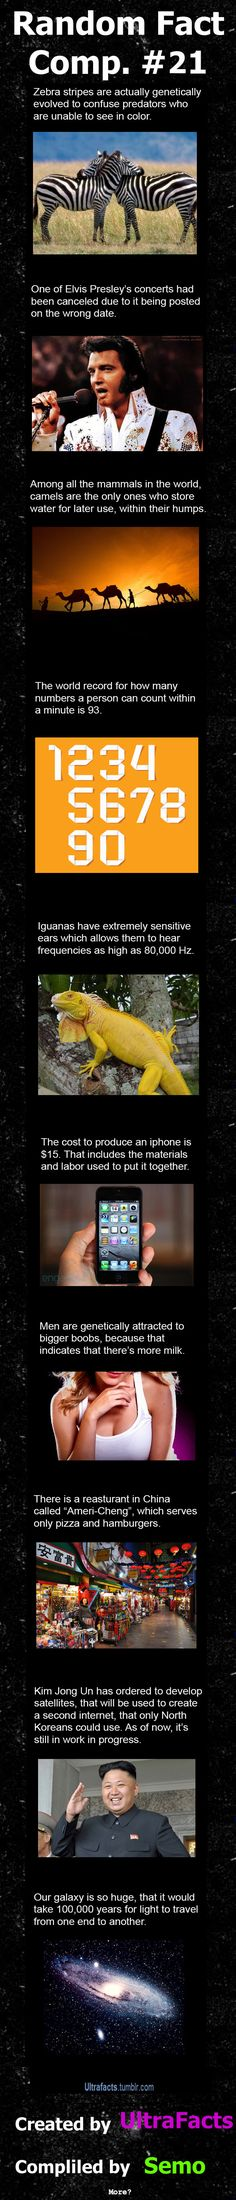 Random Fact Comp. 21 // funny pictures - funny photos - funny images - funny pics - funny quotes - #lol #humor #funnypictures